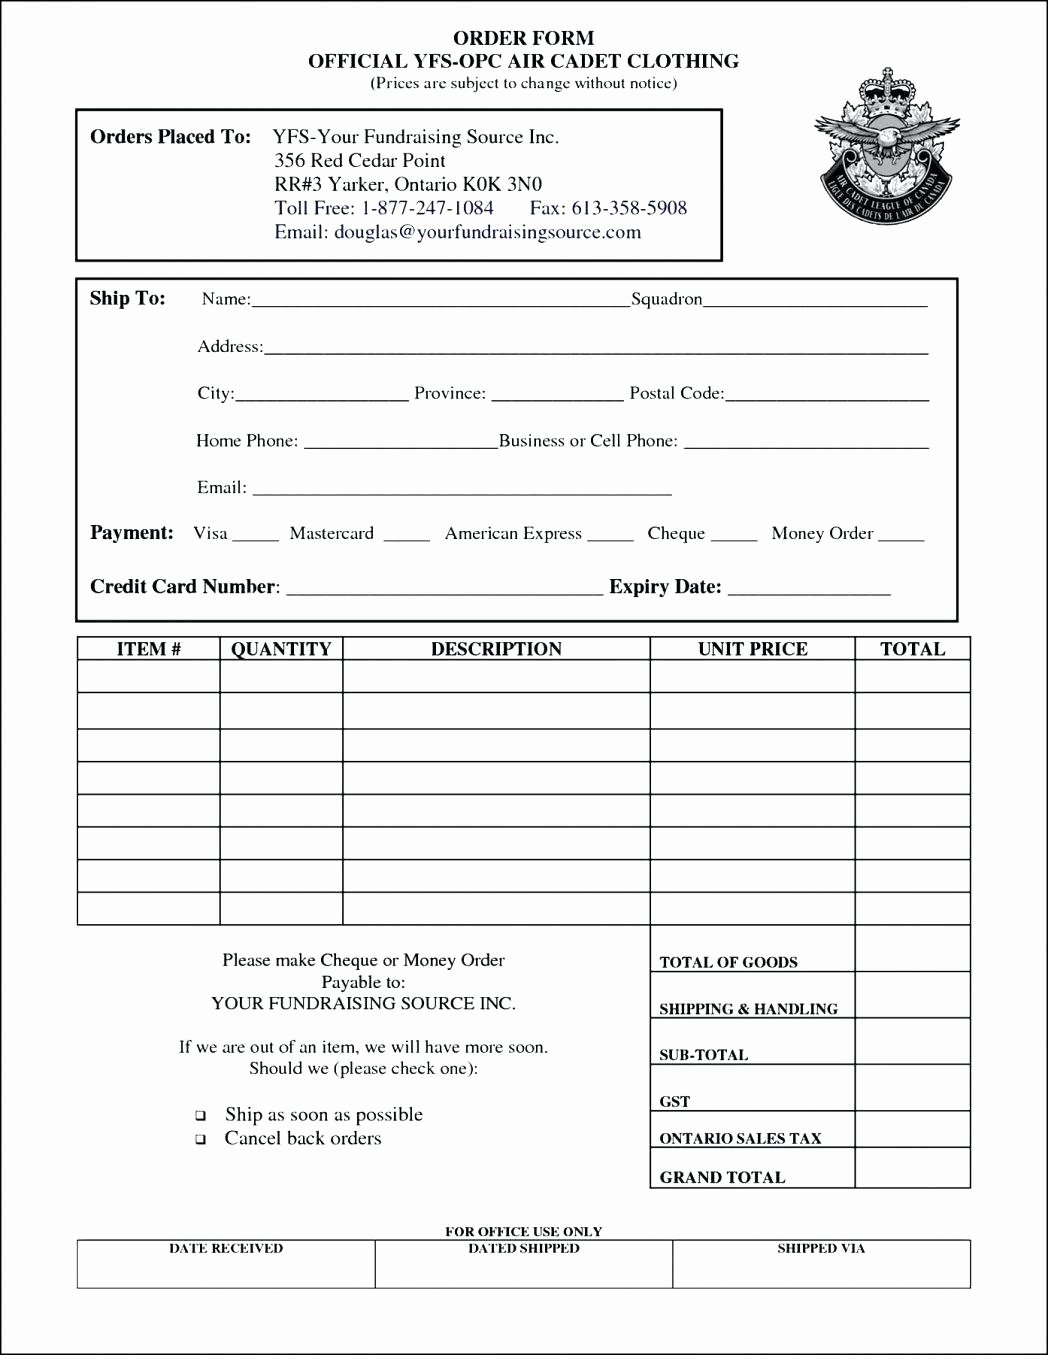 Wholesale order form Template New Template Apparel order form Template